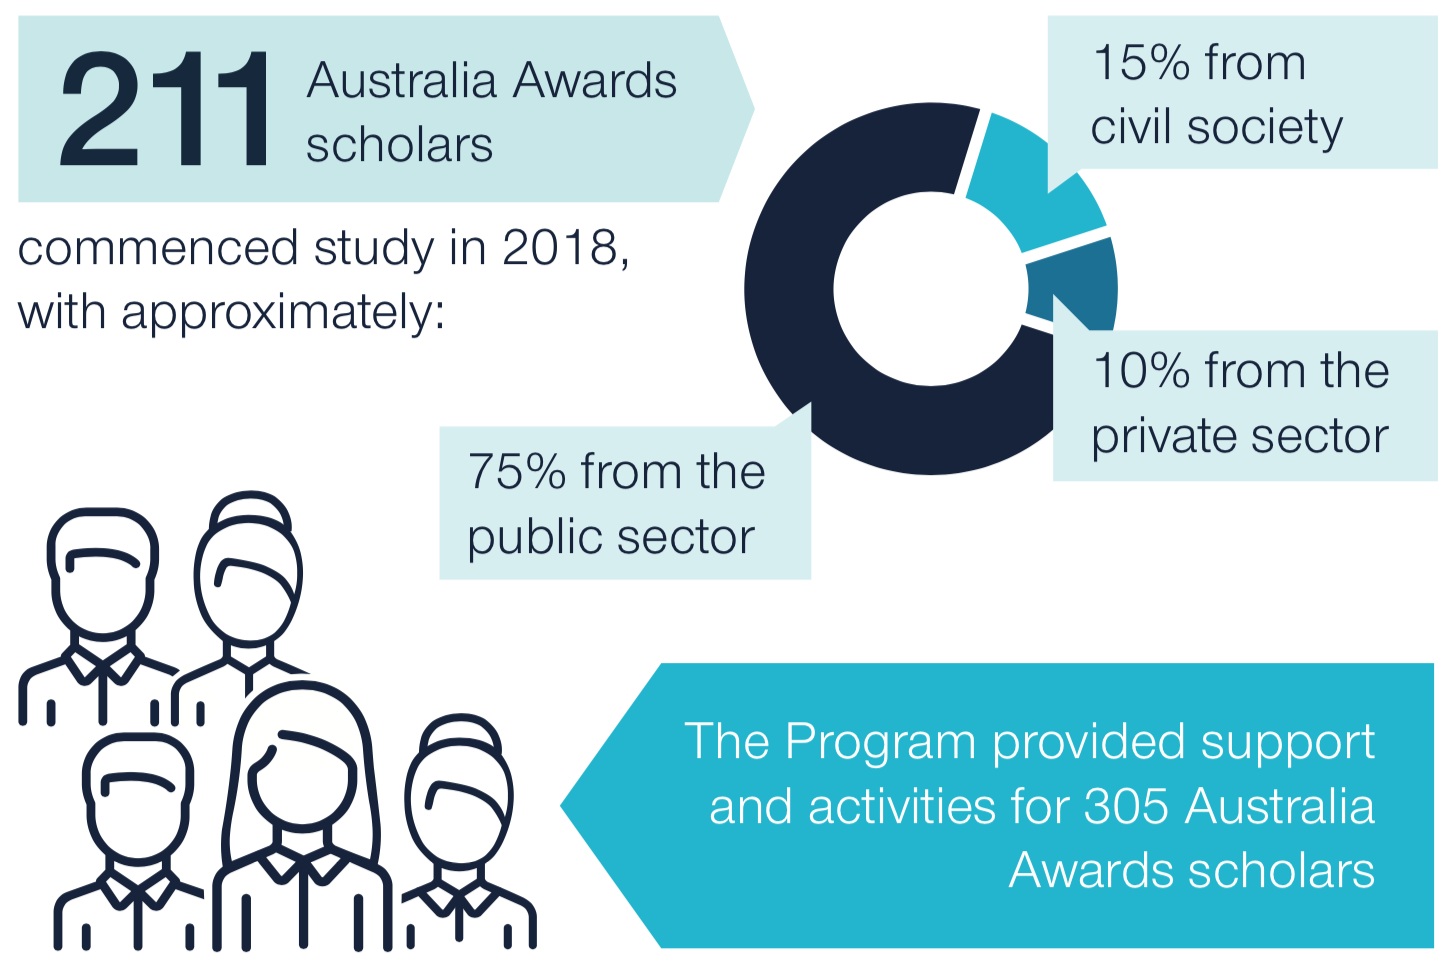 211 Australia Awards scholars commenced study in 2017, with approximately 15% from civil society, 10% from the private sector and 75% from the public sector. The program provided support and activities for 305 Australia Award scholars.